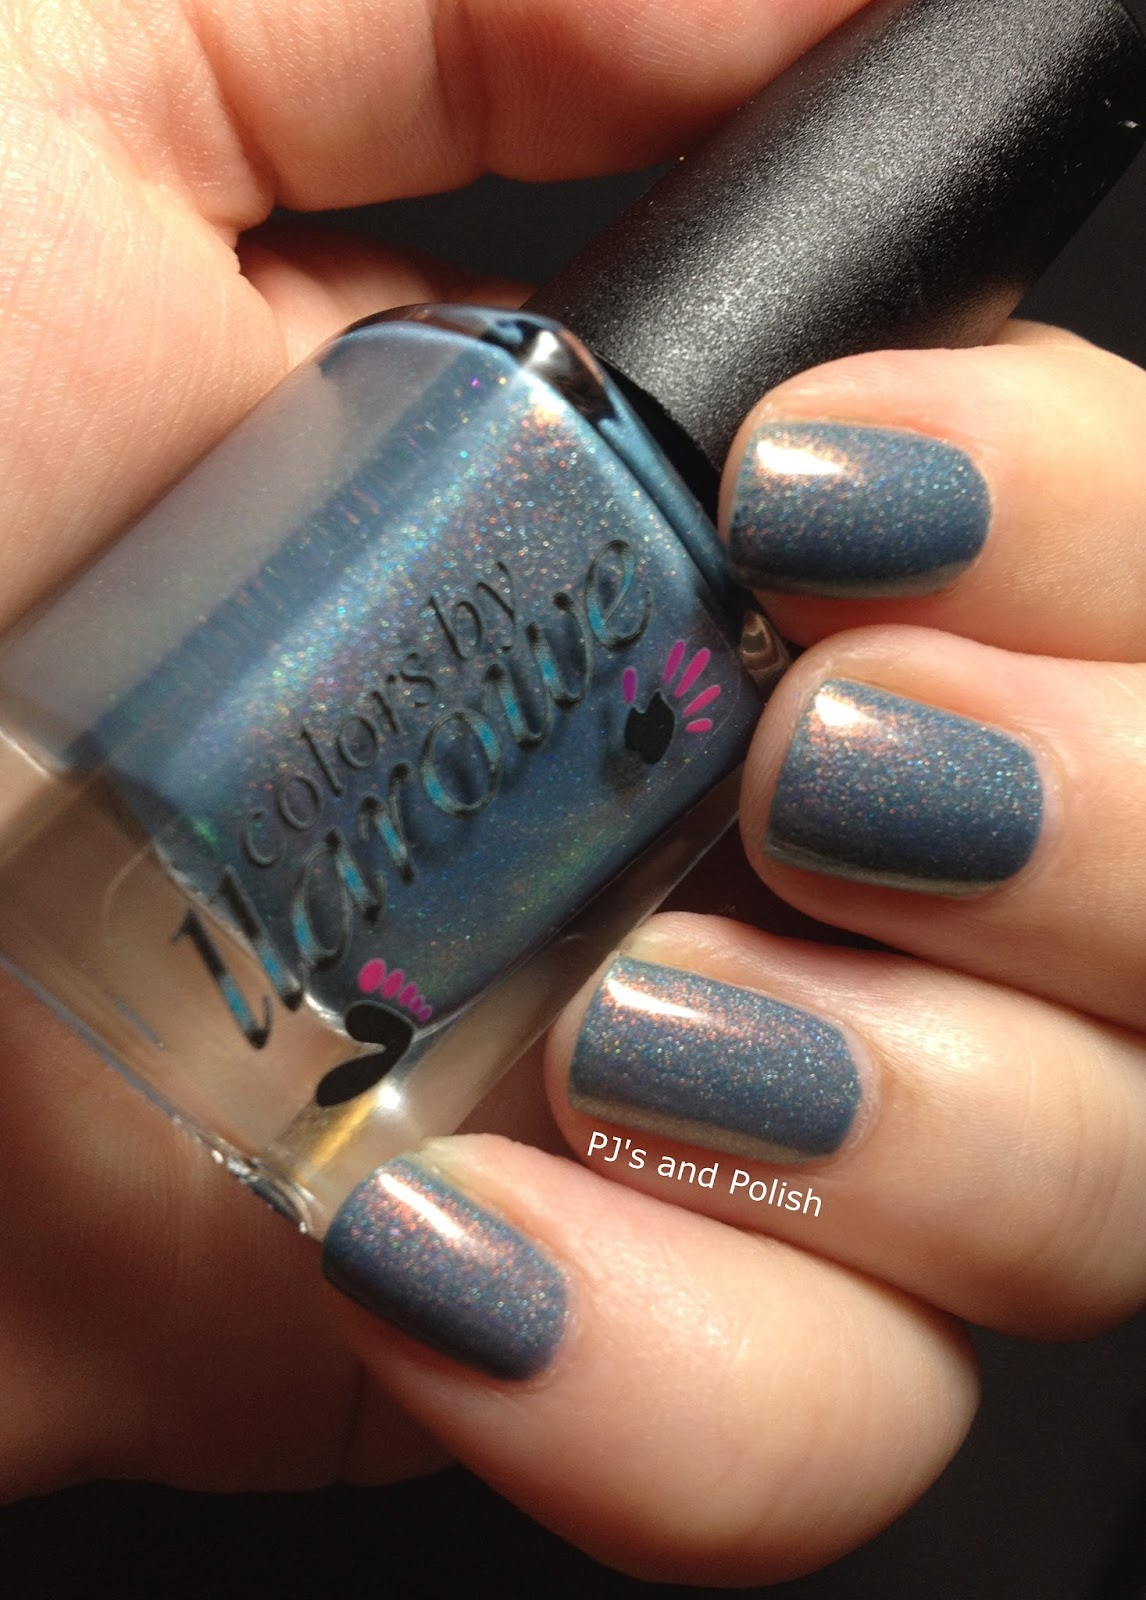 Swatch and Review Colors by Llarowe CbL Wind Beneath My Wings HK Girl Holo Shimmer